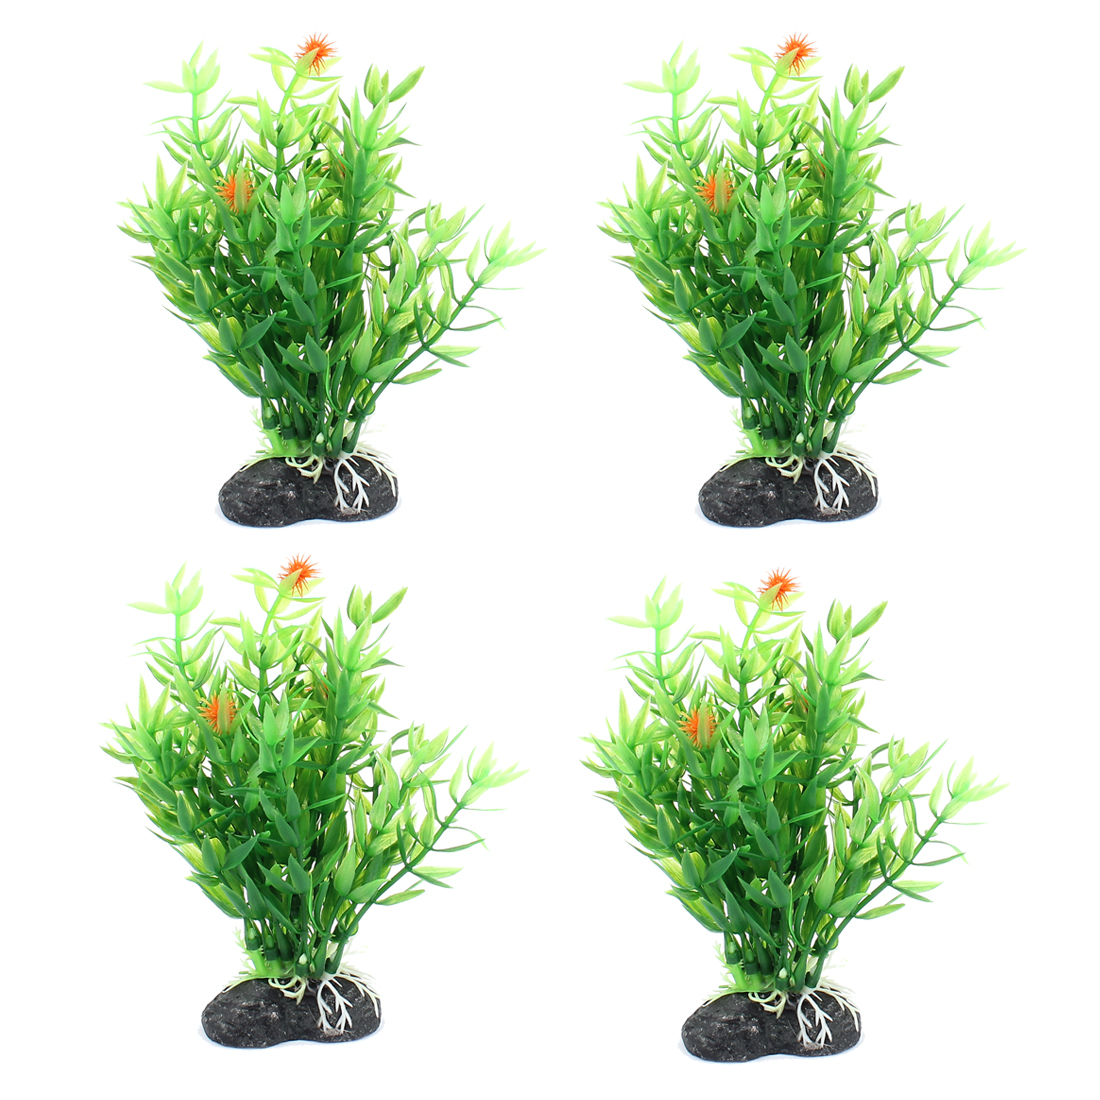 Plastic Underwater Aquascaping Plant Fish Tank Aquarium Decor 4pcs